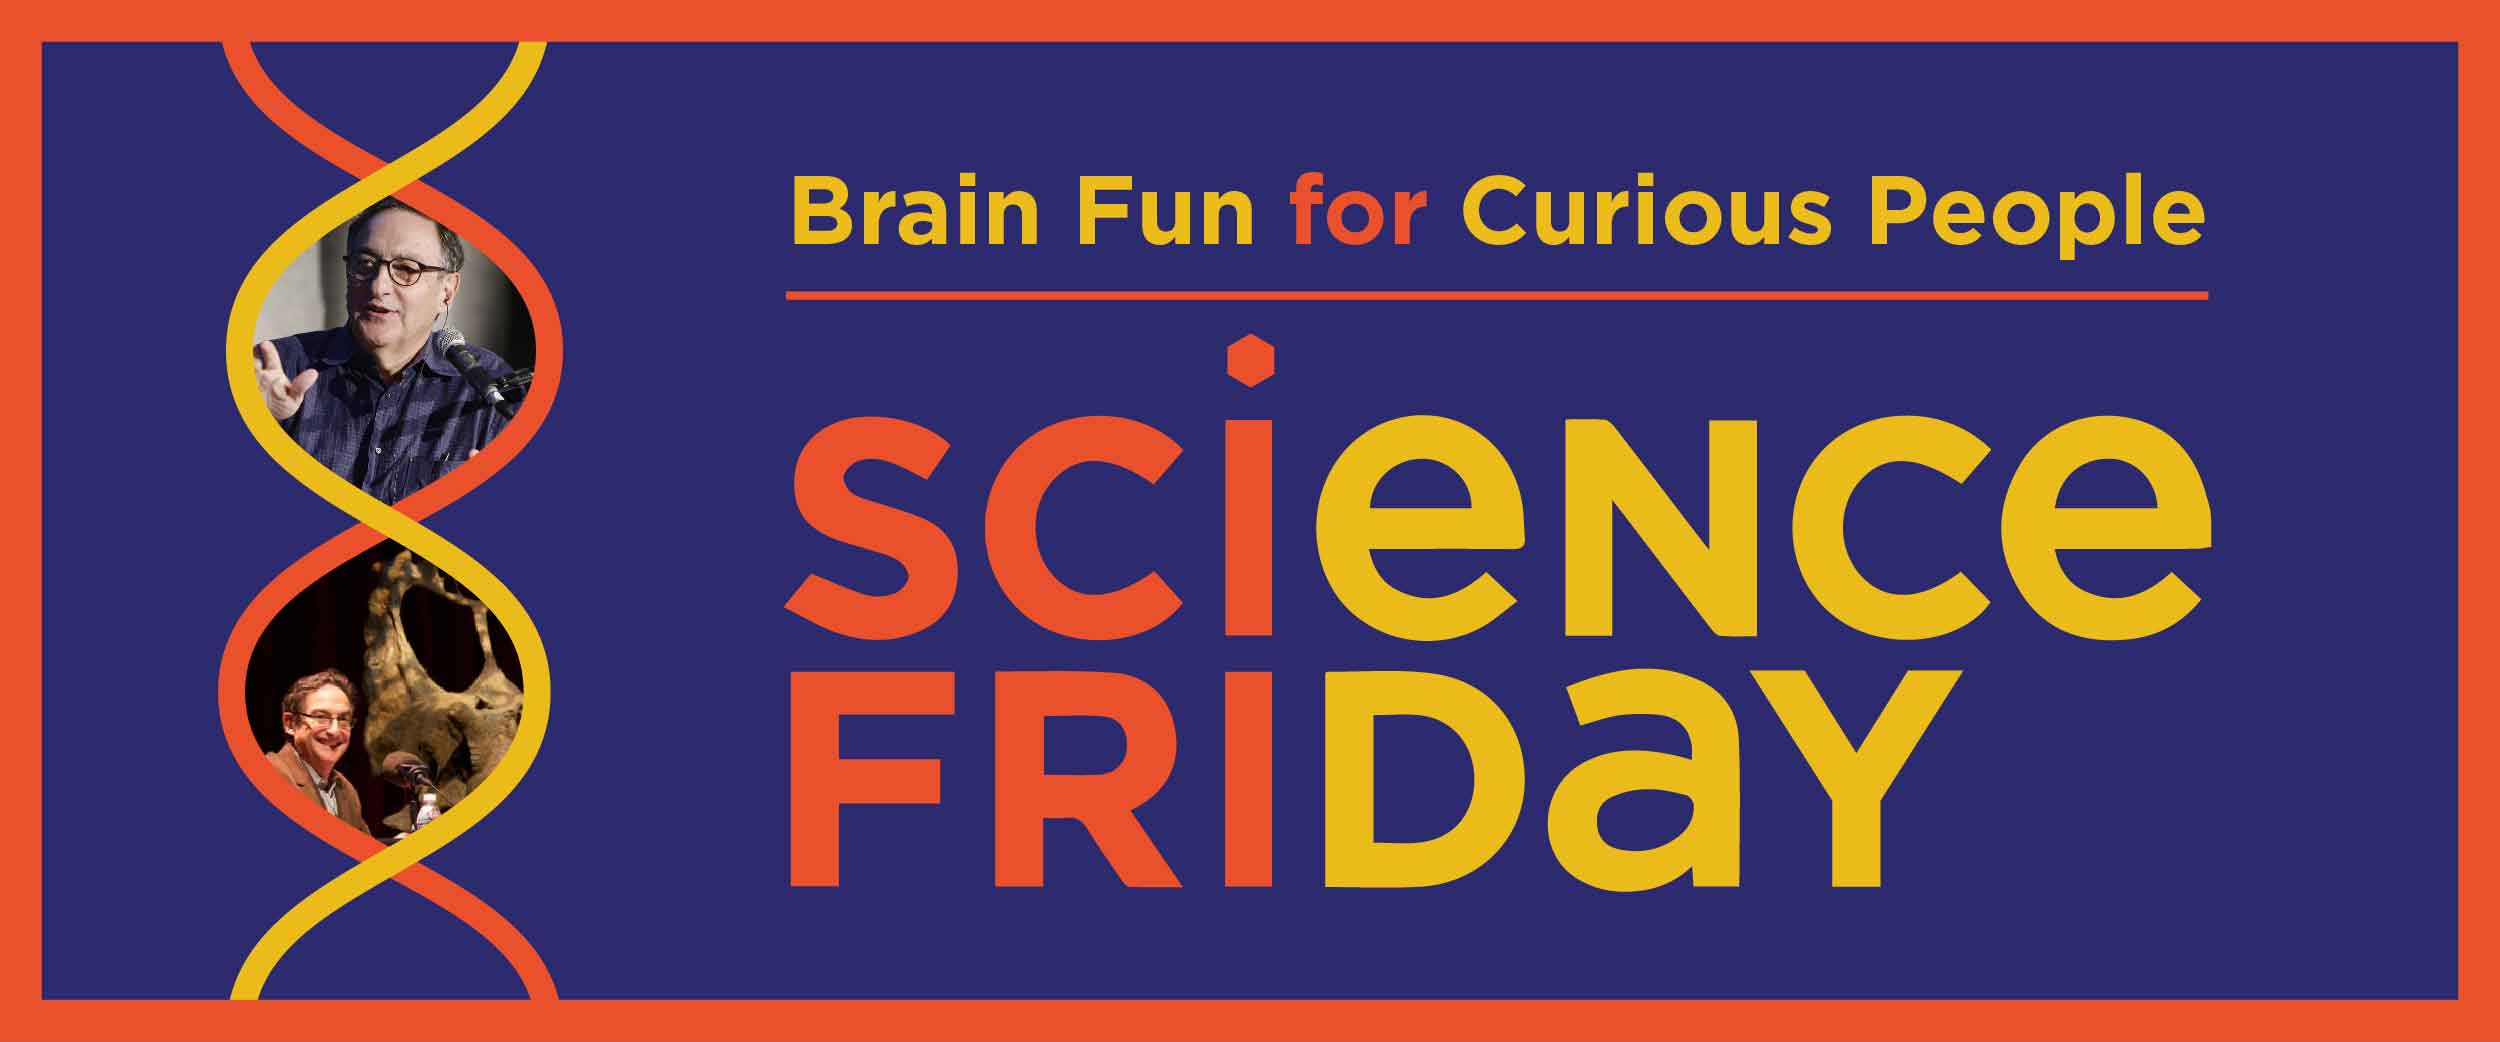 Brain Fun for Curious People -- Science Friday